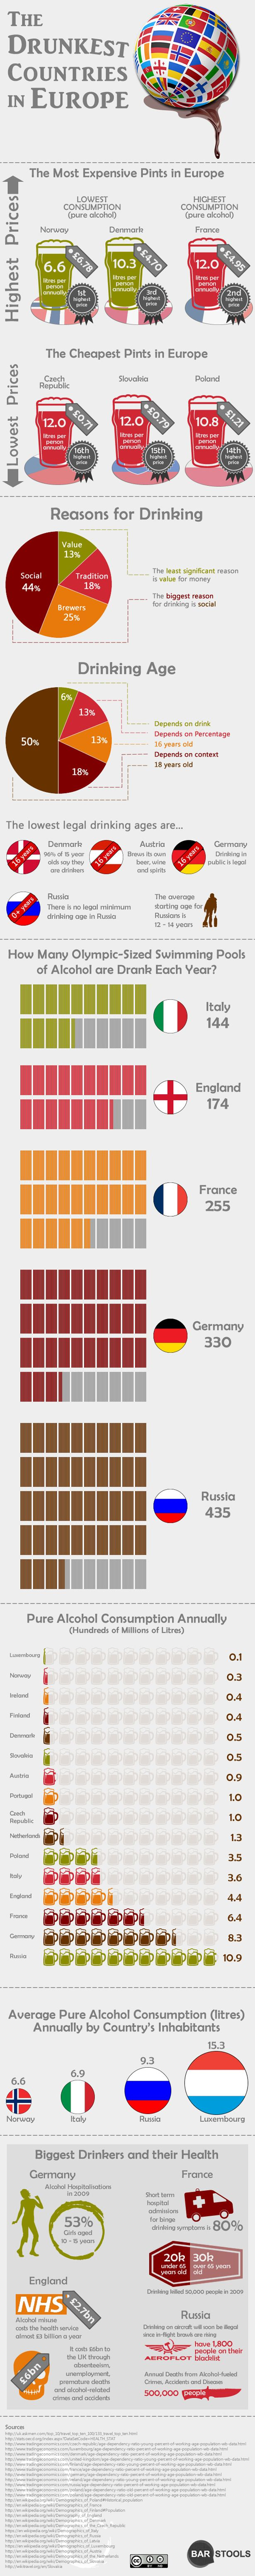 Ever wondered how much a pint cost in France compared with Norway? Or what the legal drinking age is in Russia. Perhaps you're losing sleep over which